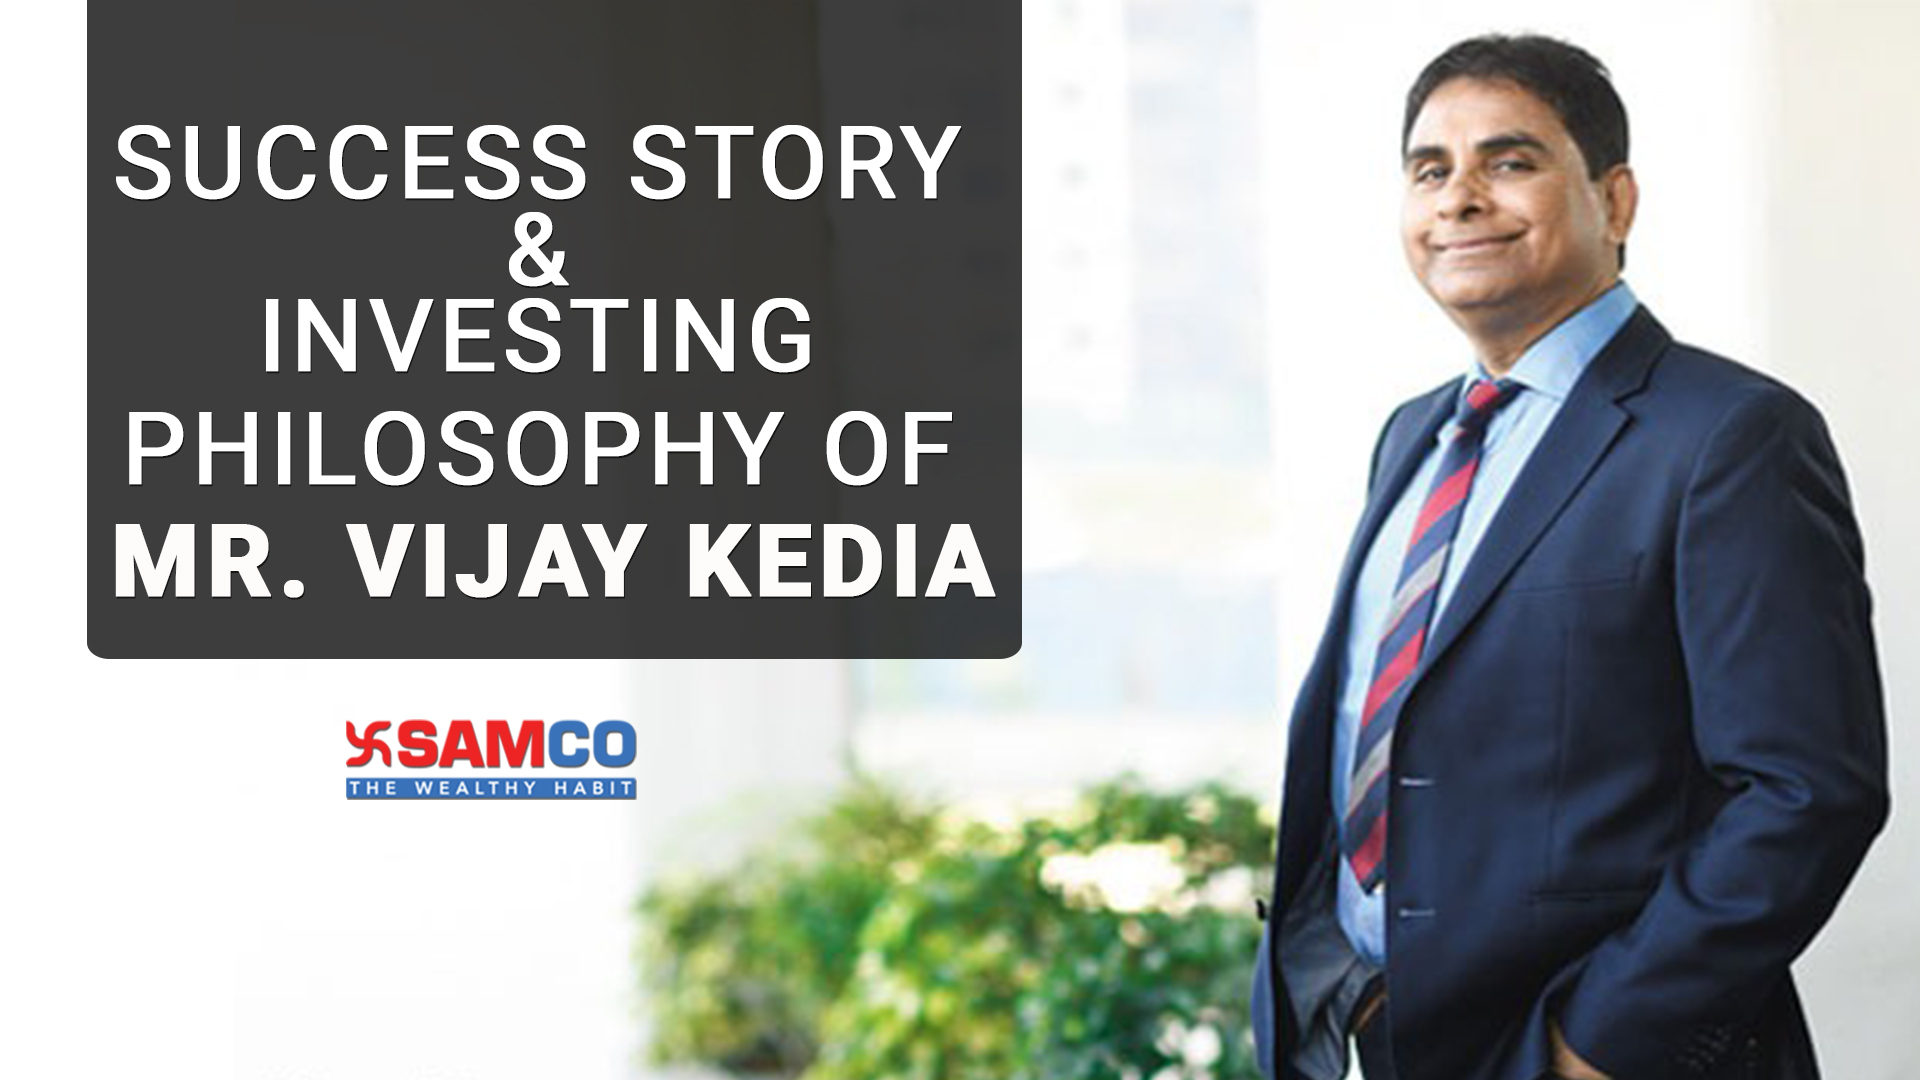 Success Story and Investing Philosophy of Mr. Vijay Kedia